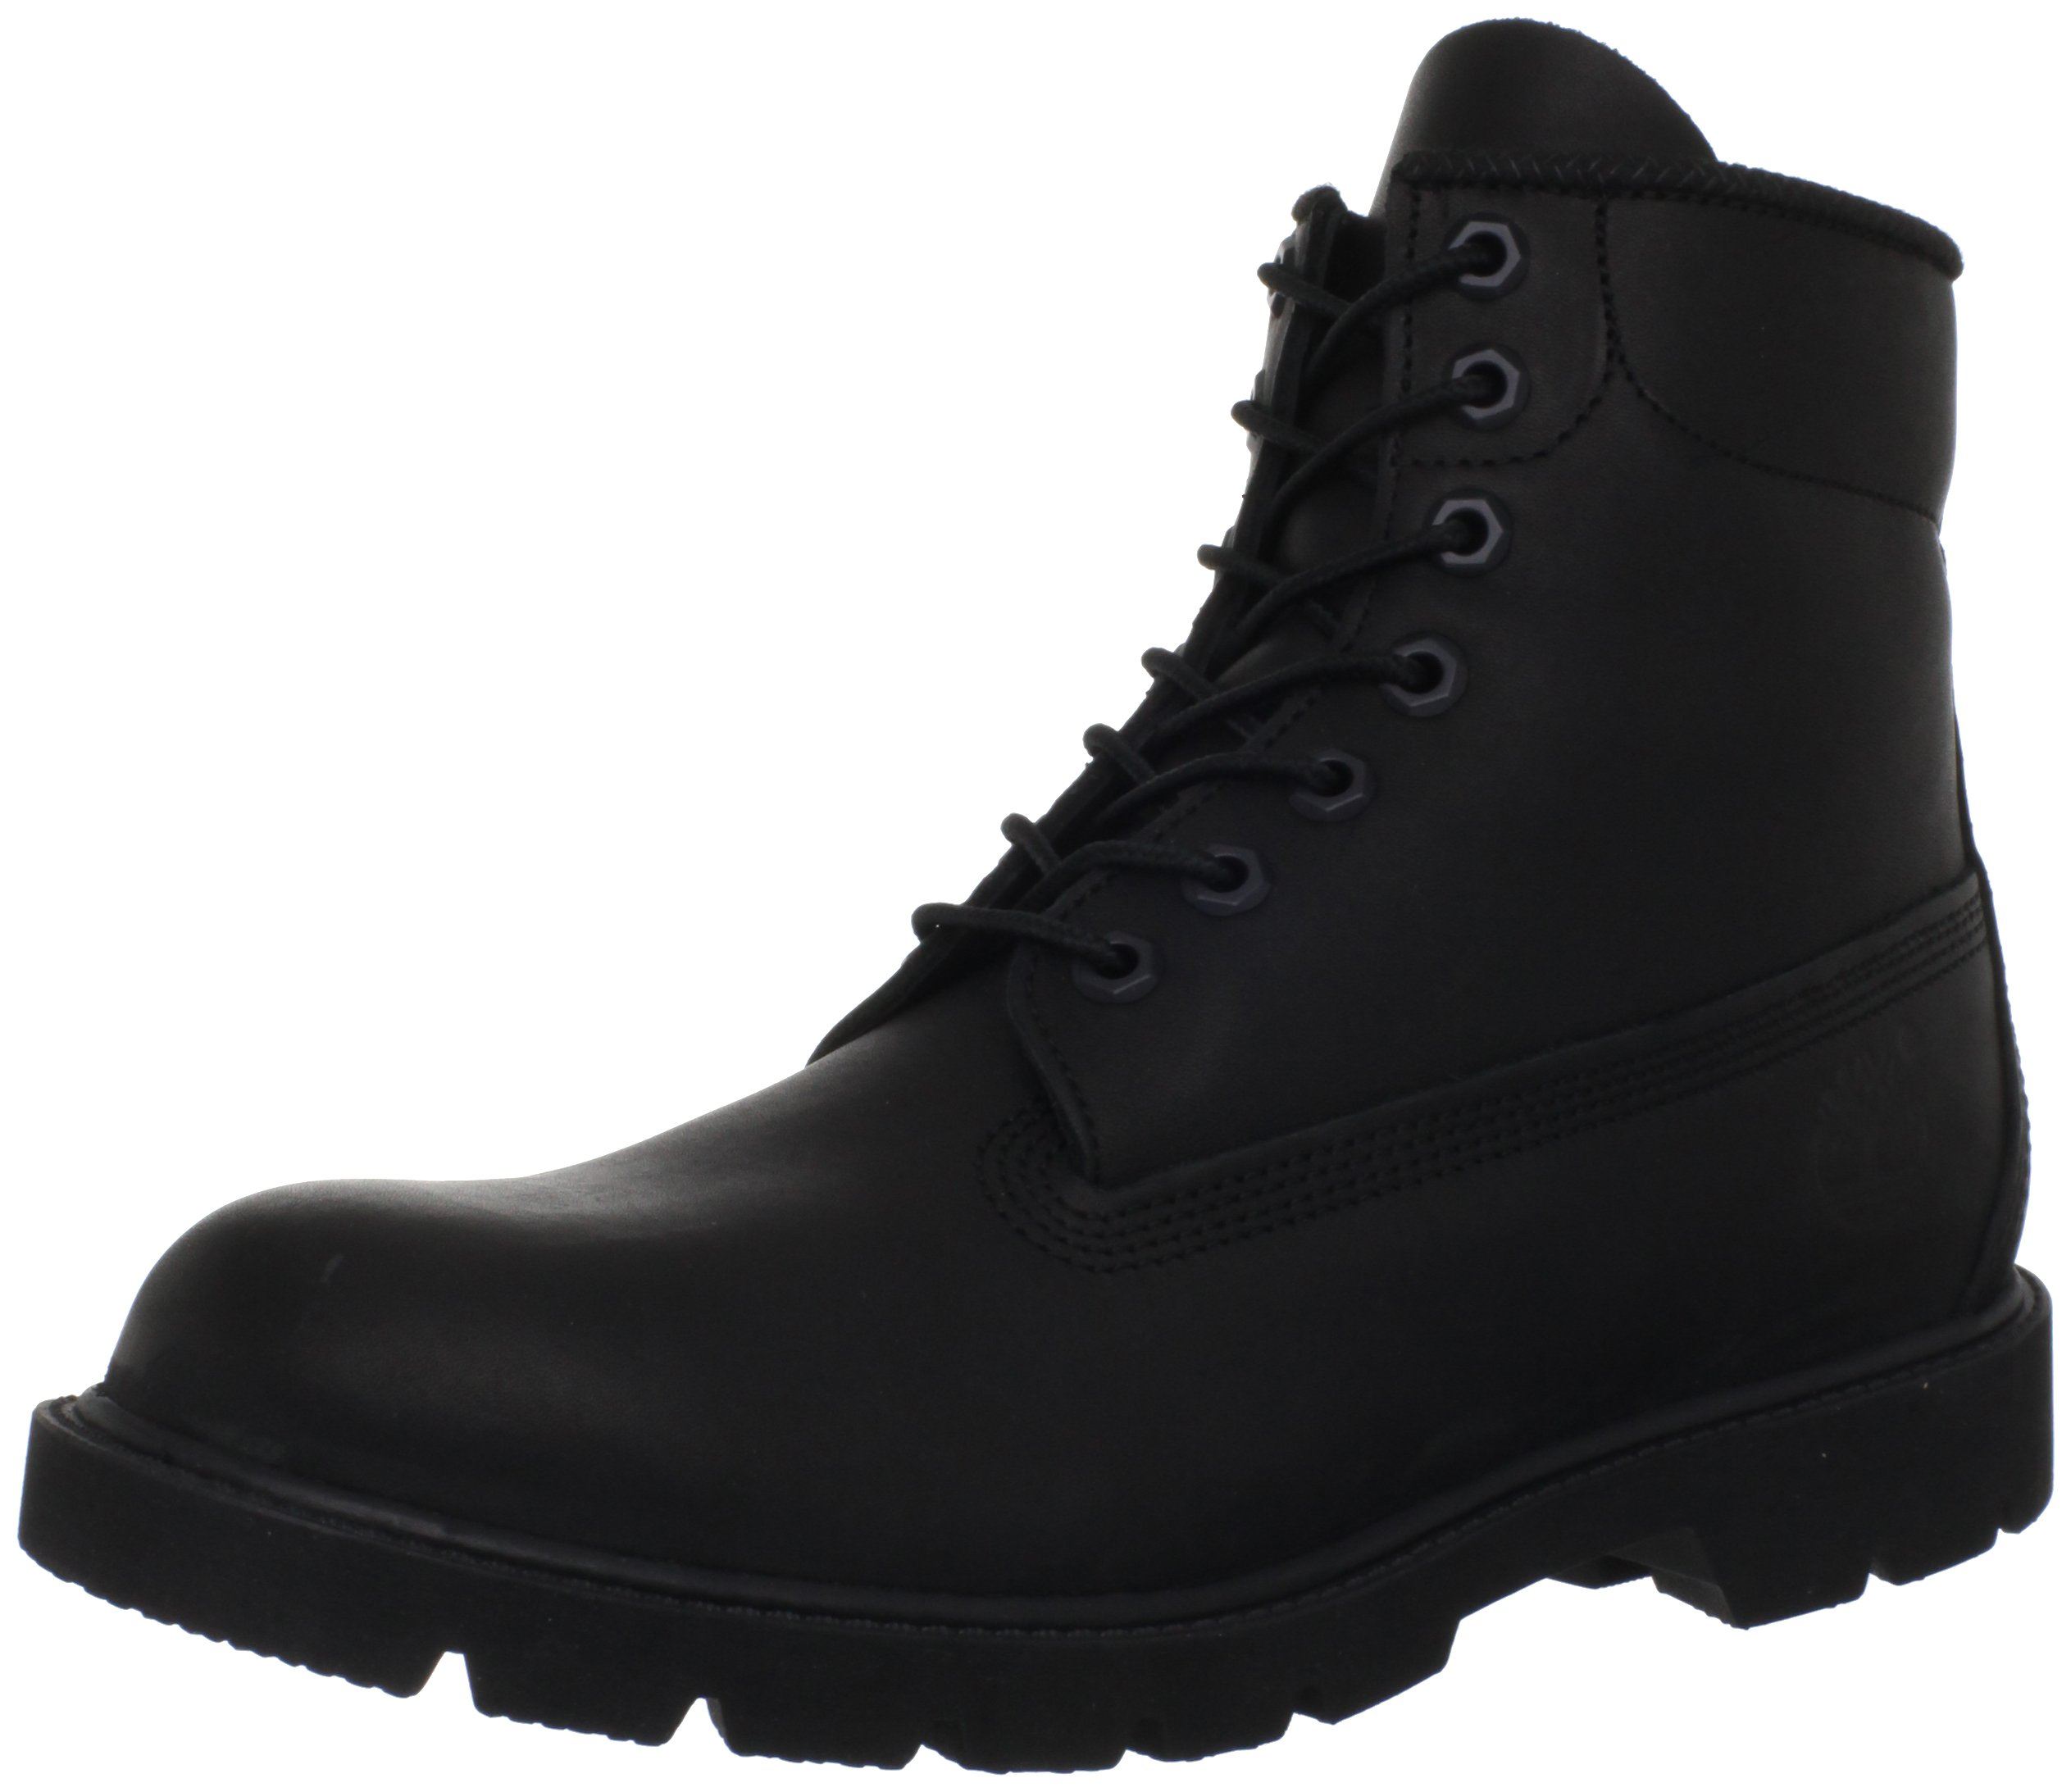 Timberland Men's Six-Inch Basic Boot,Black,12 W US